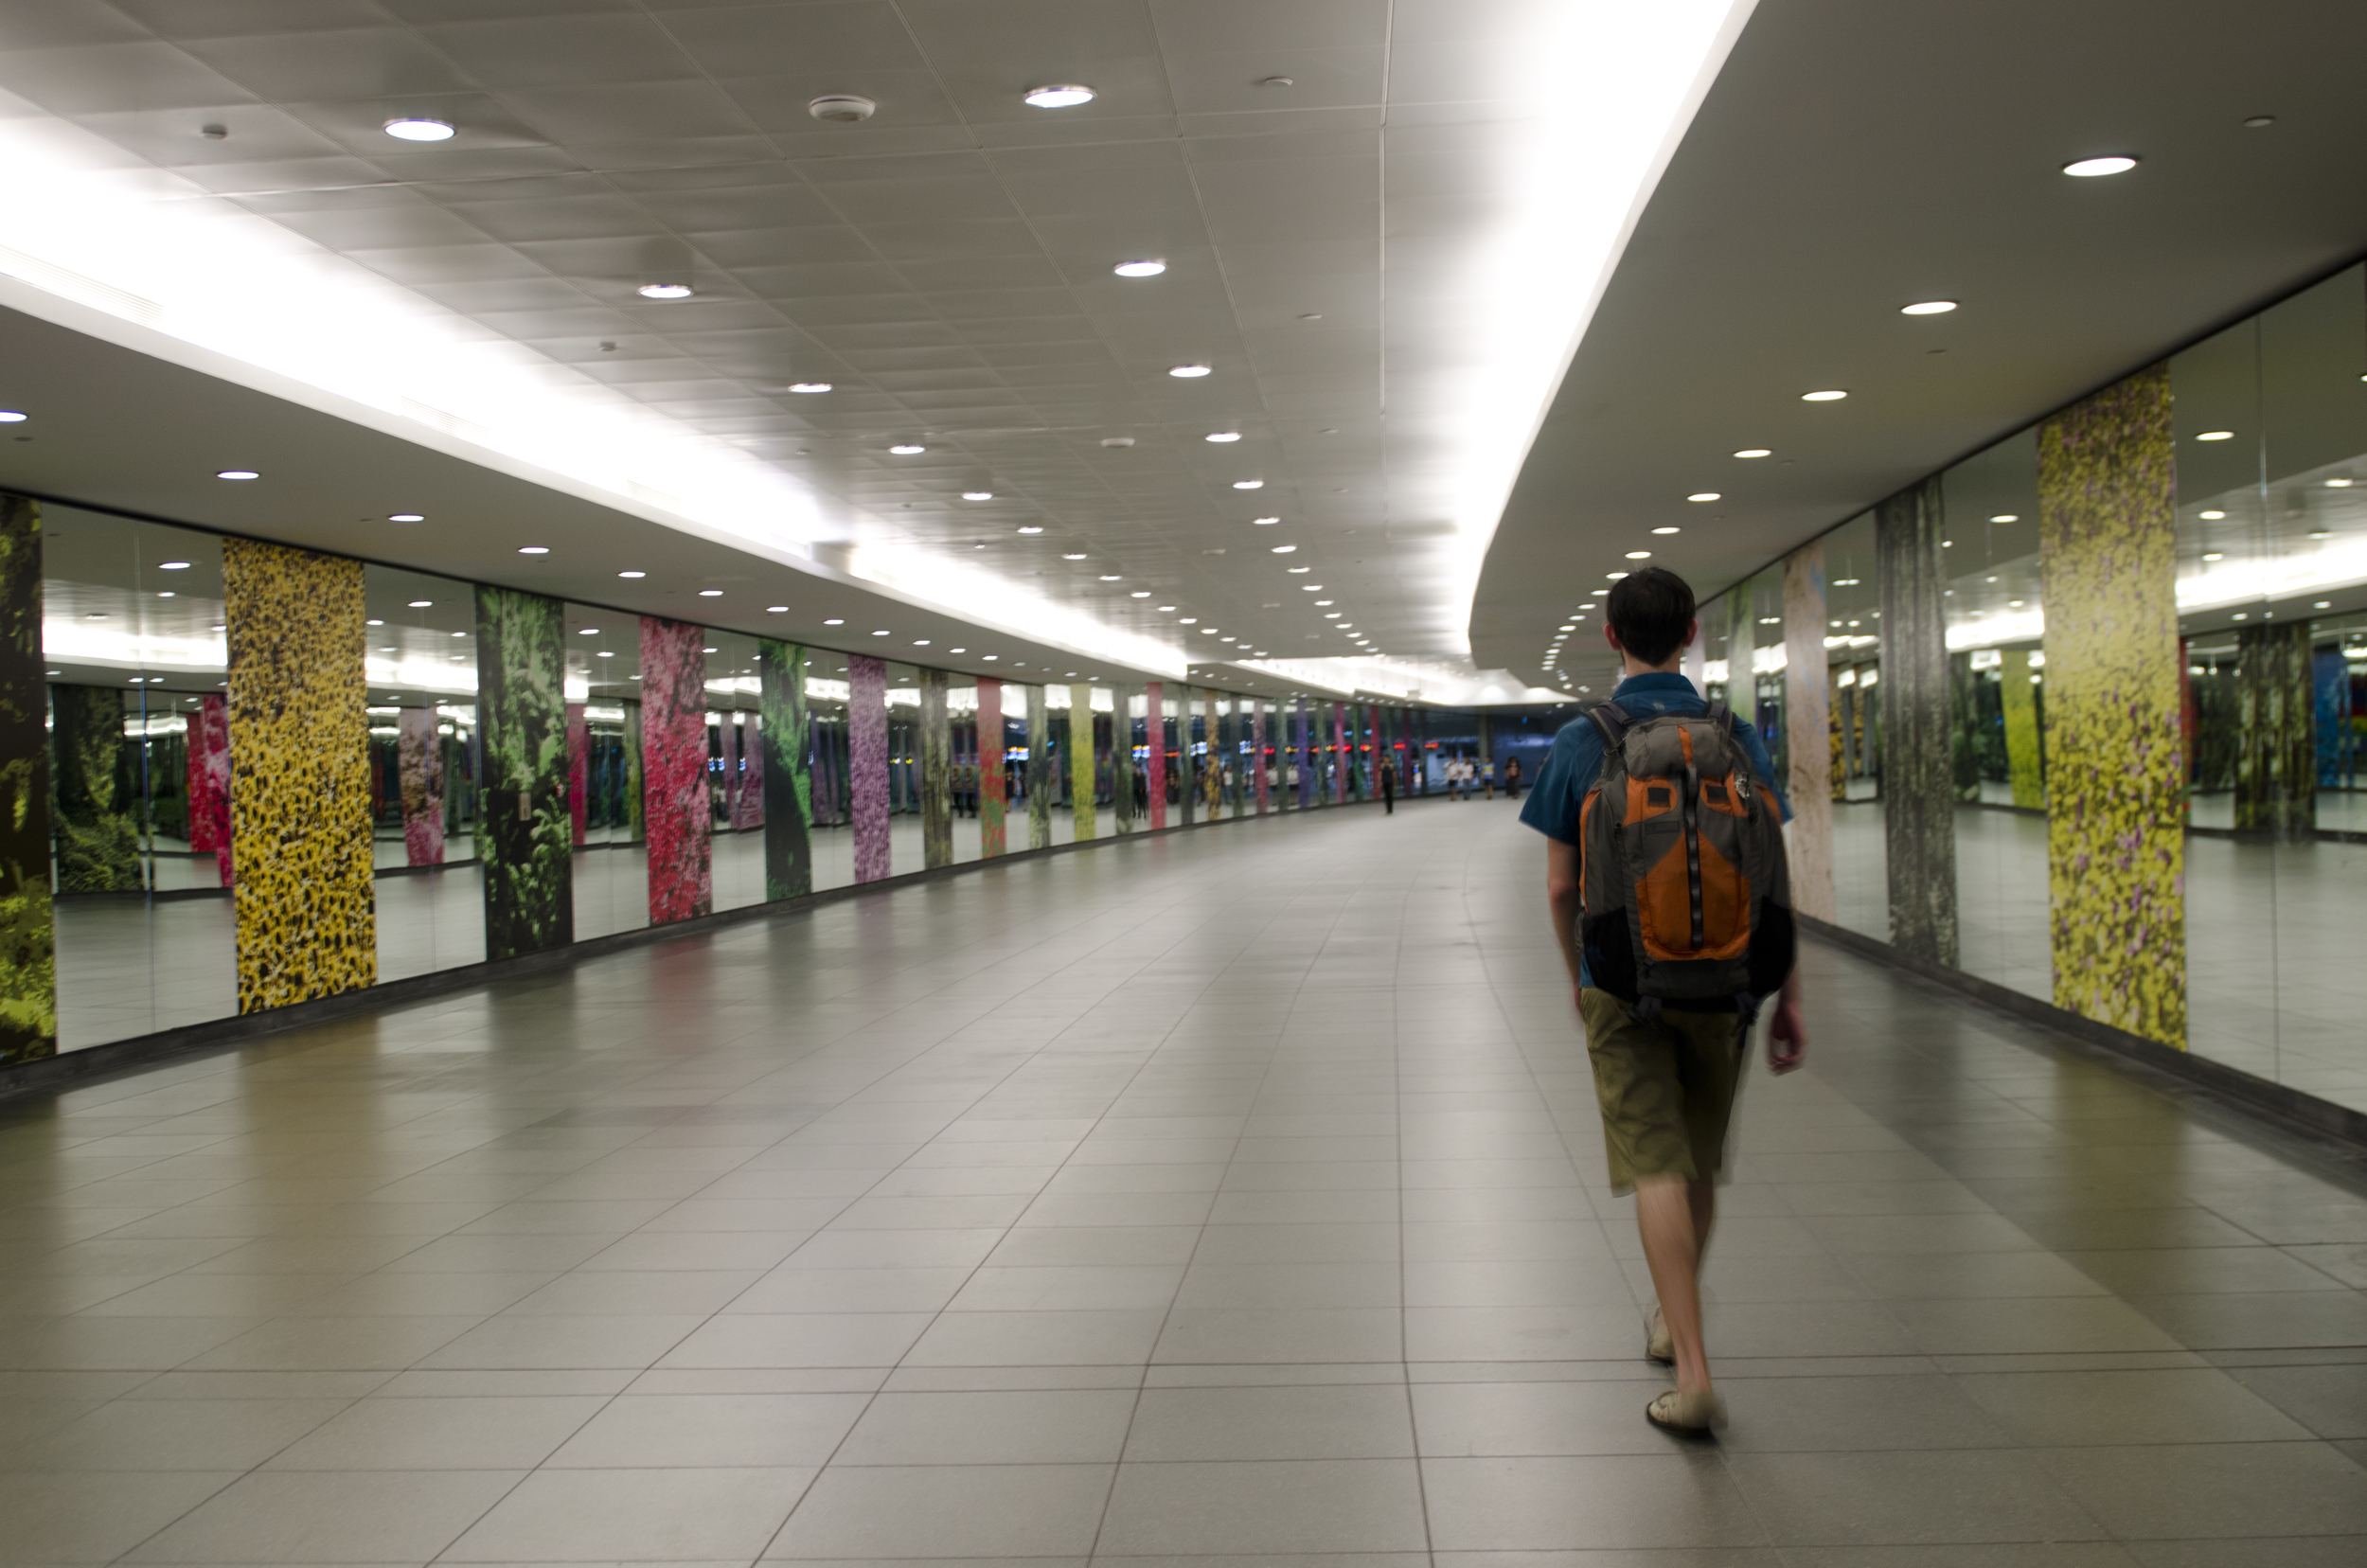 Inside one of the spotless (and spacious) MRT stations